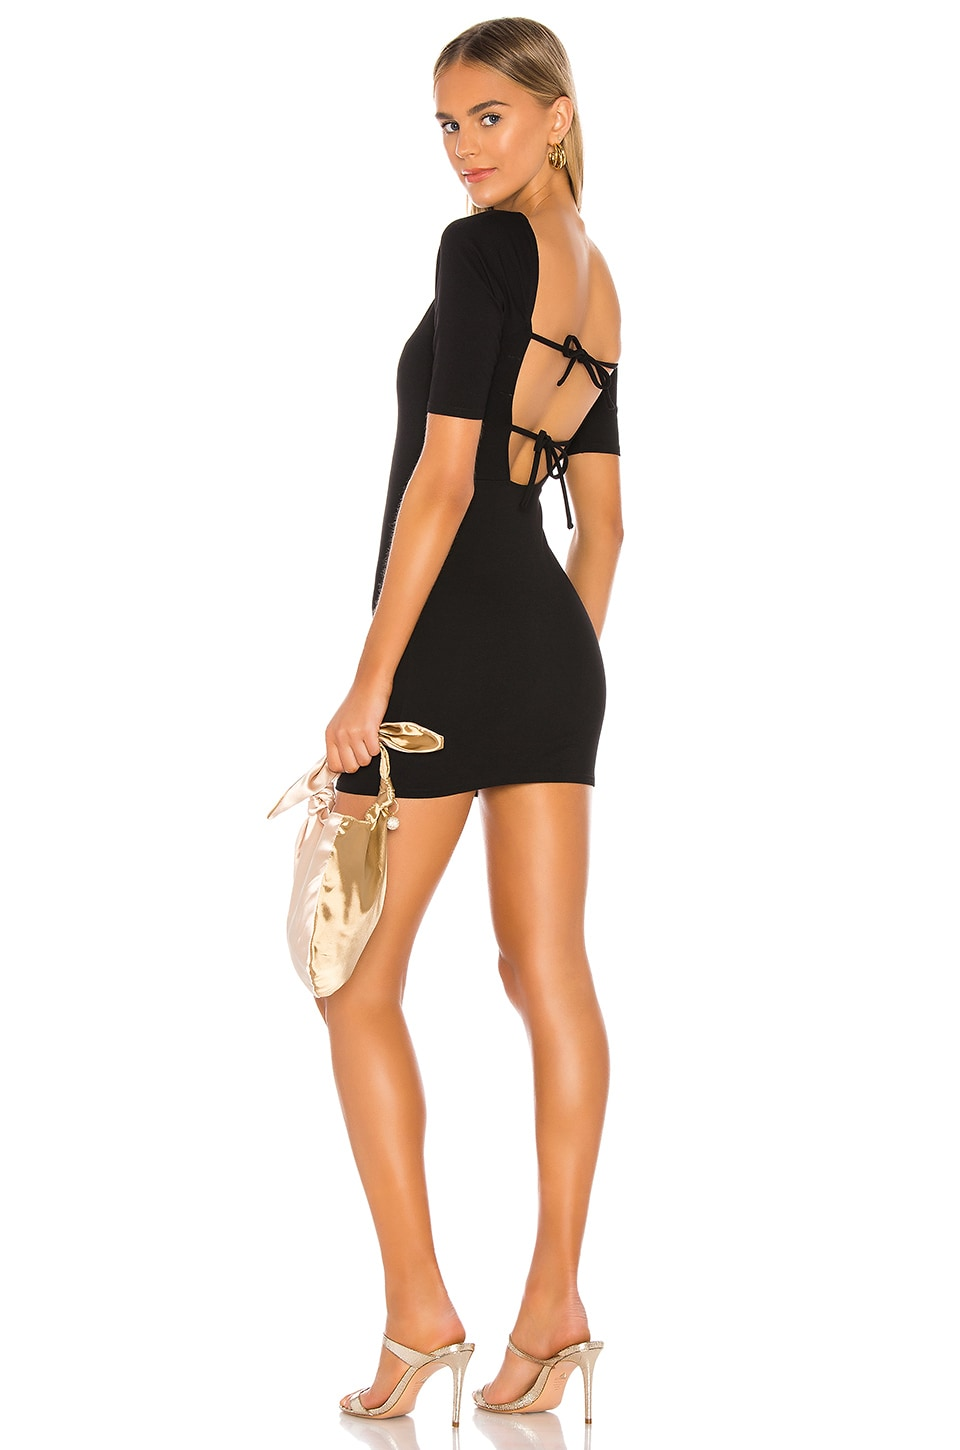 Privacy Please Rosalyn Mini Dress in Black